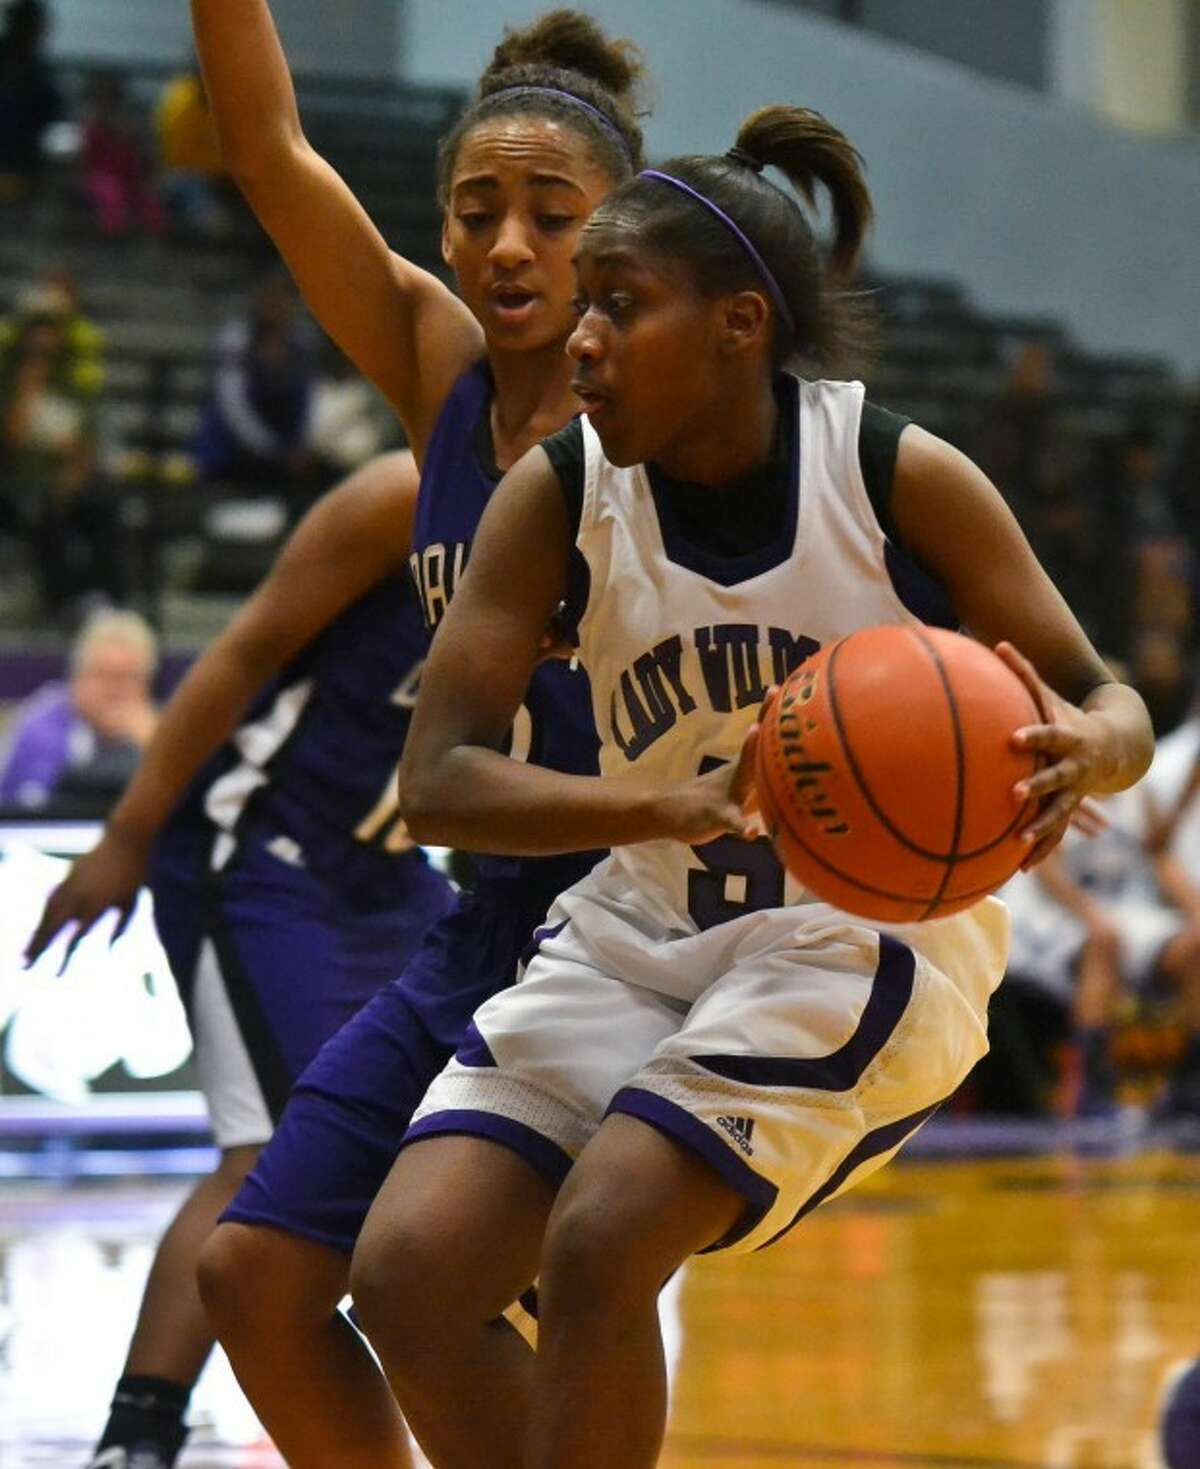 Humble's girls basketball team is at Crosby Wednesday evening and hosts C.E. King on Saturday.